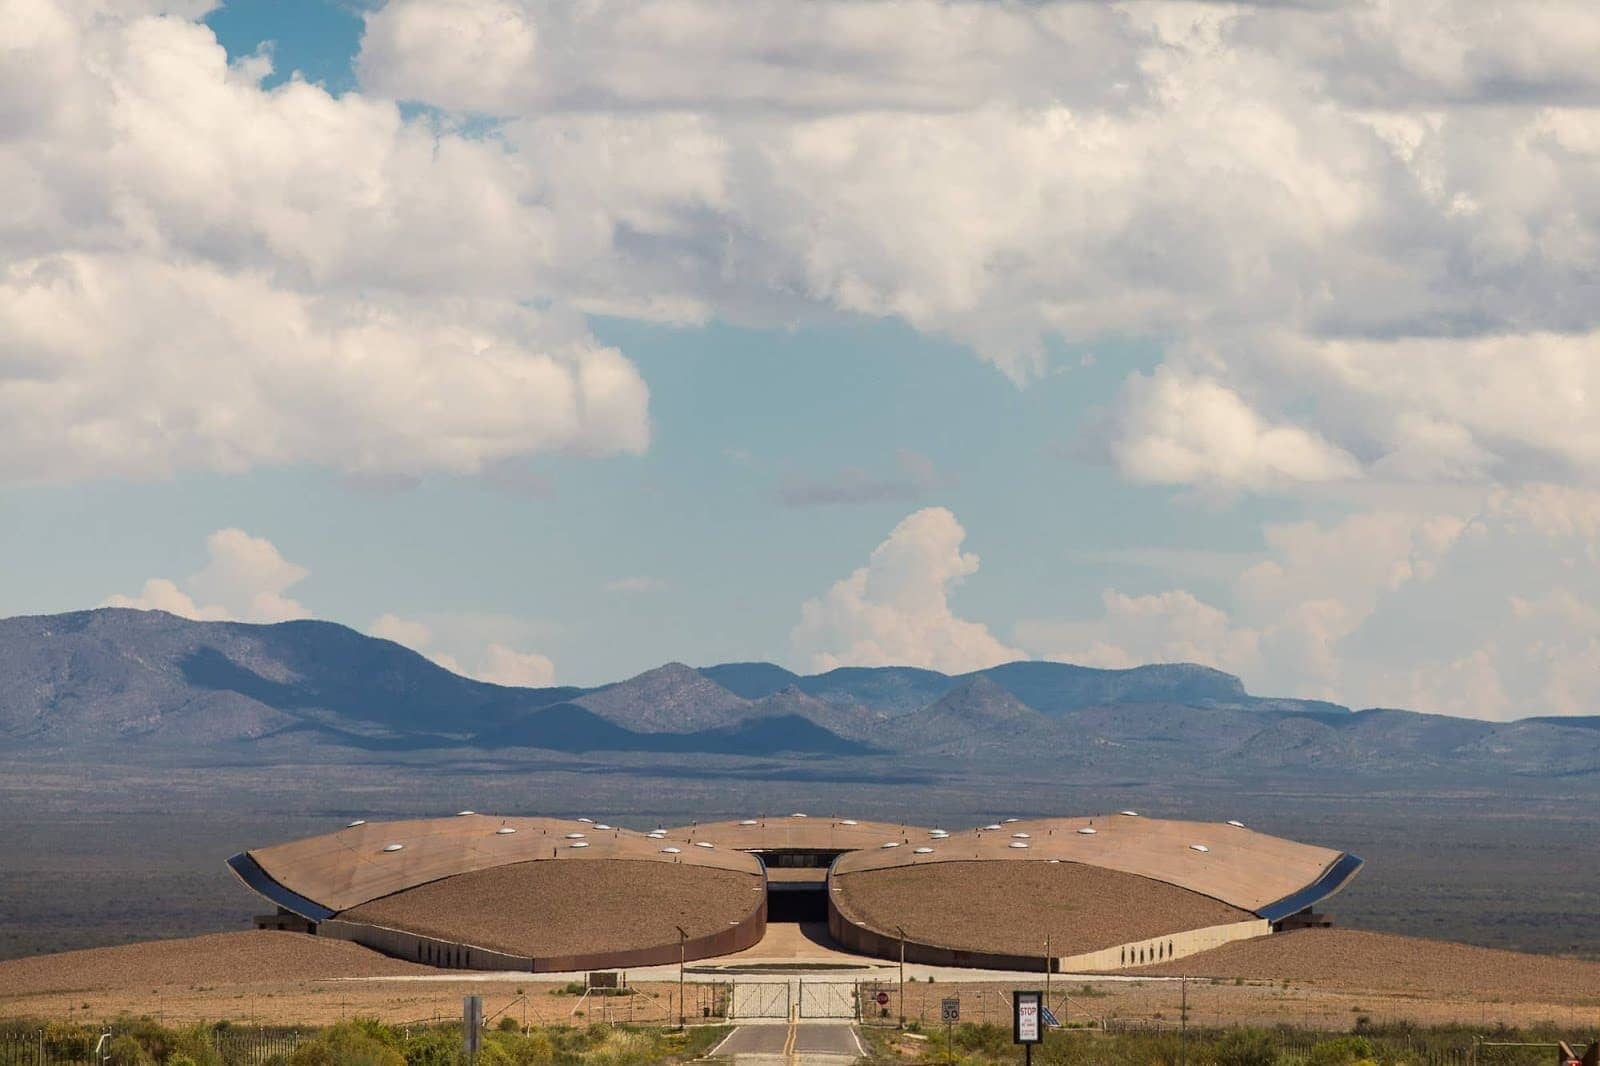 Spaceport America%252C New Mexico by Laurence Norah